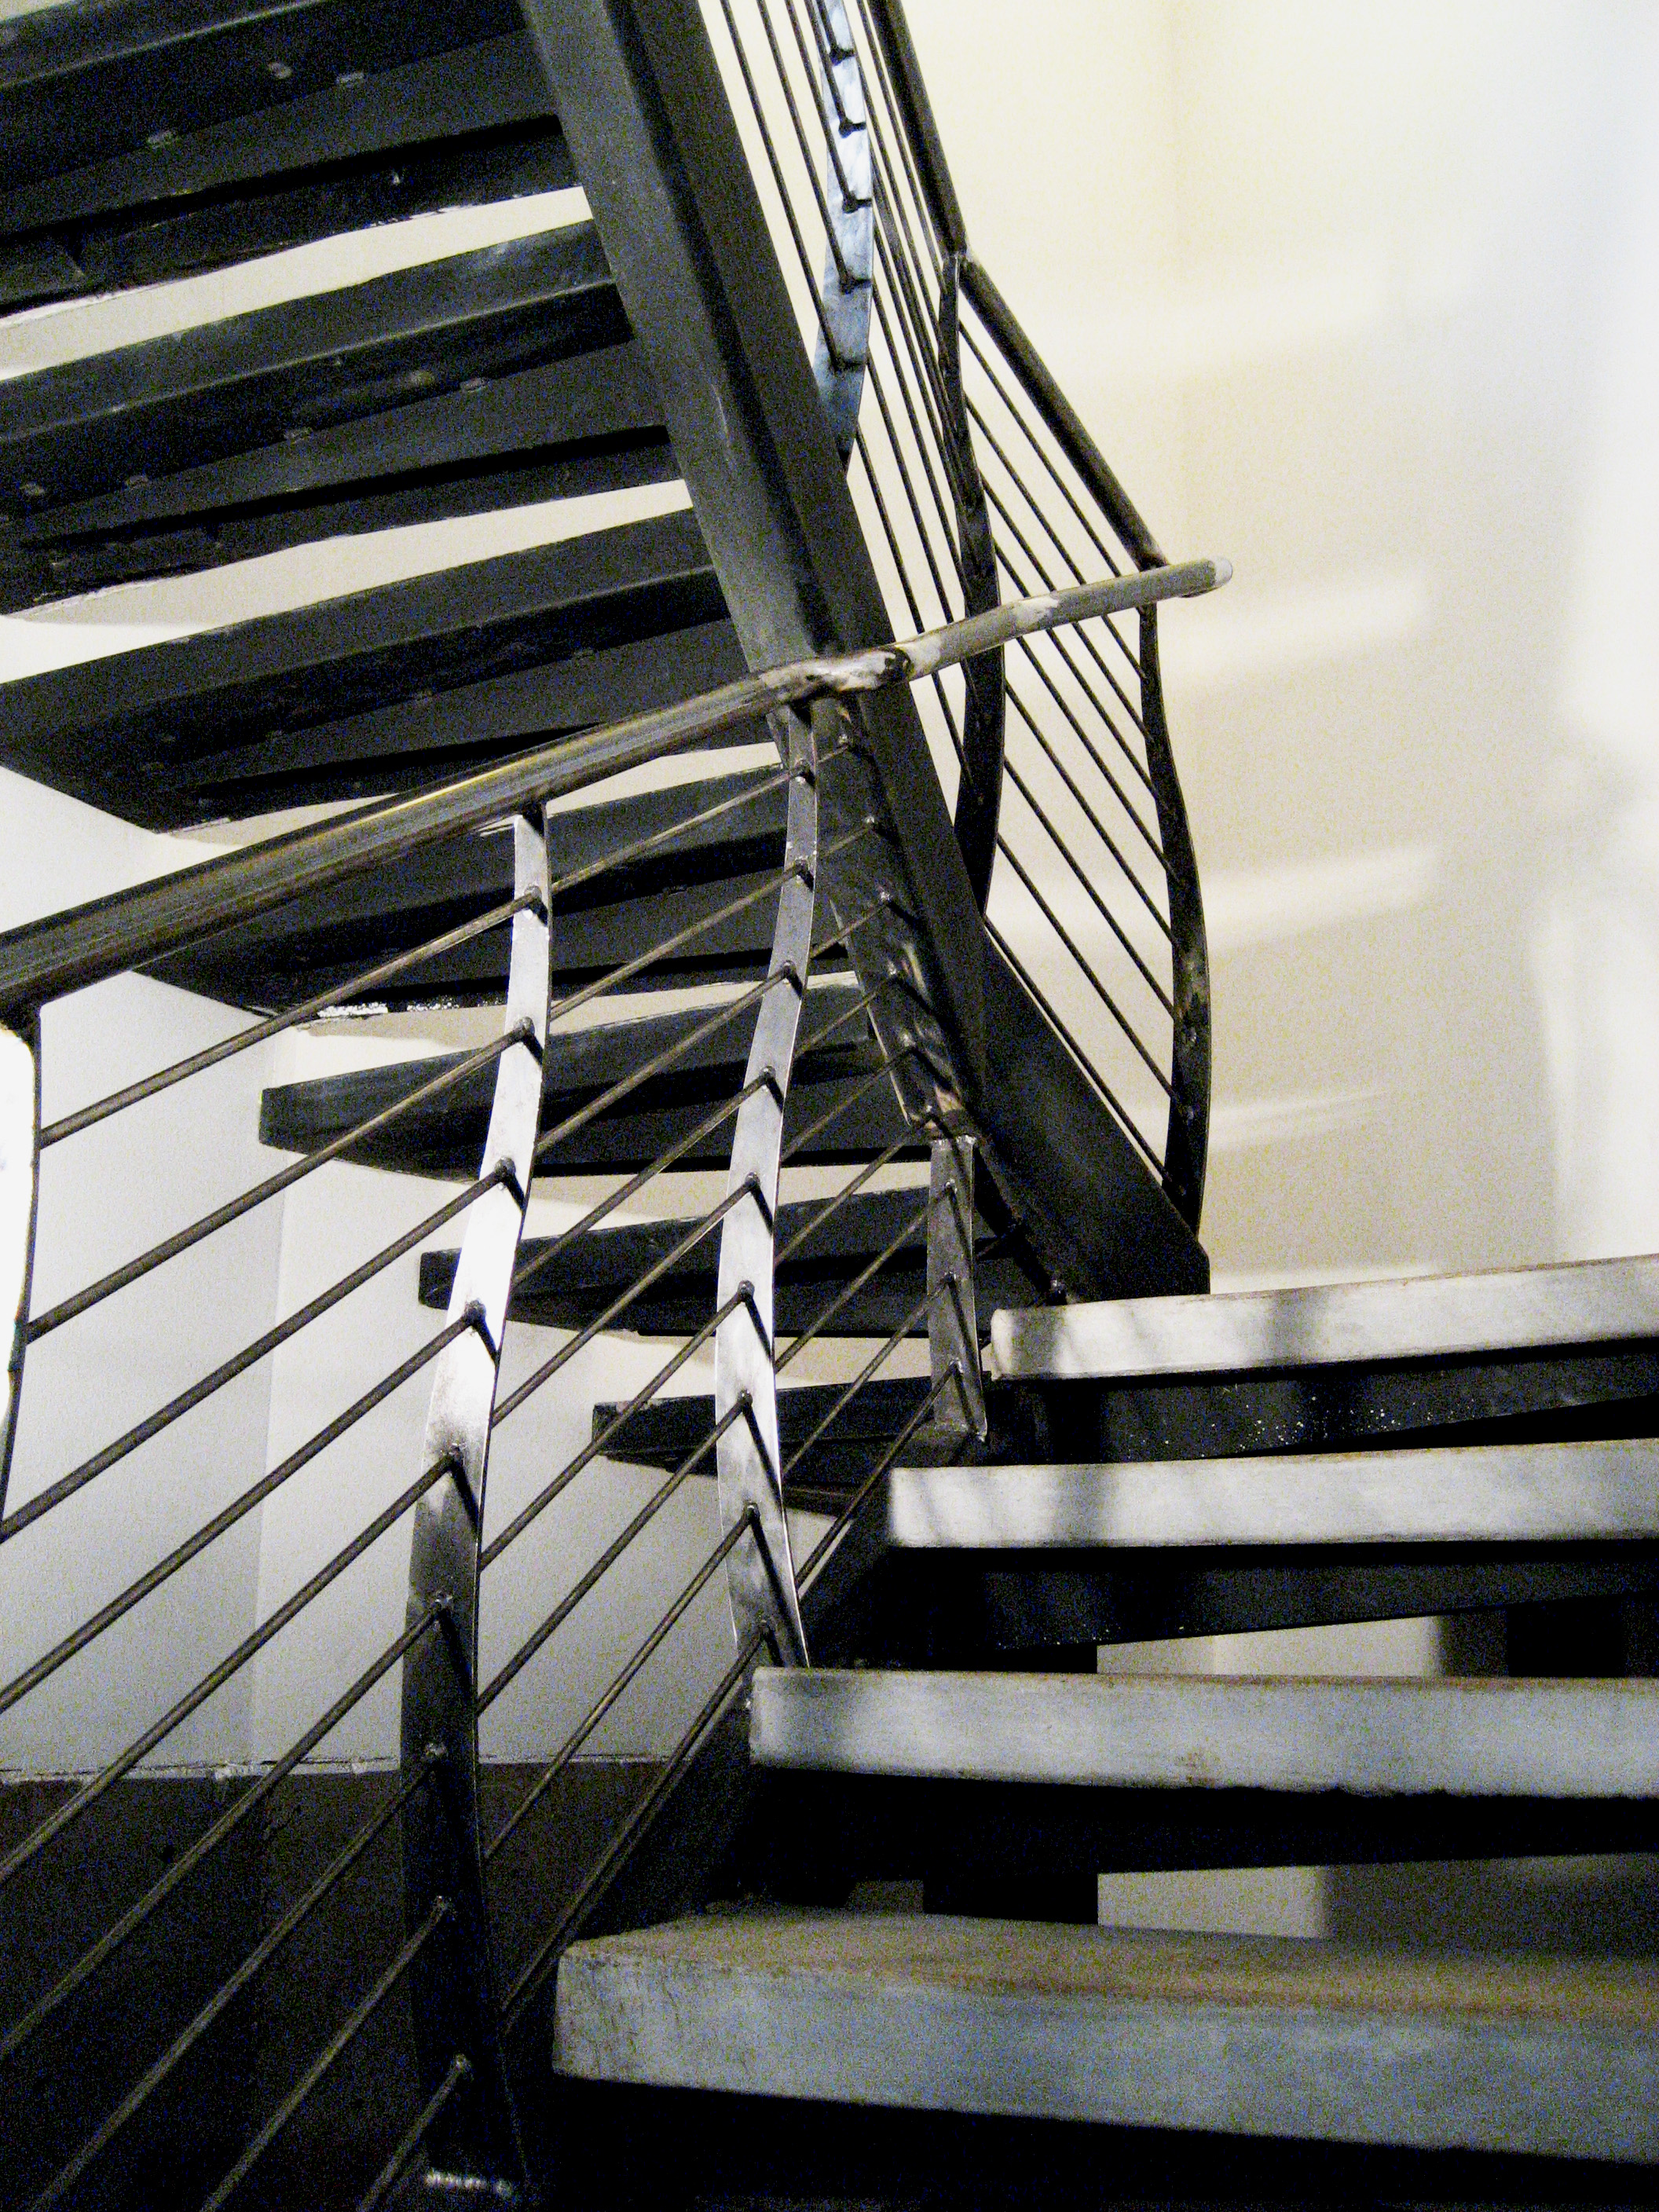 Stairwell Handrail with Curved Balusters